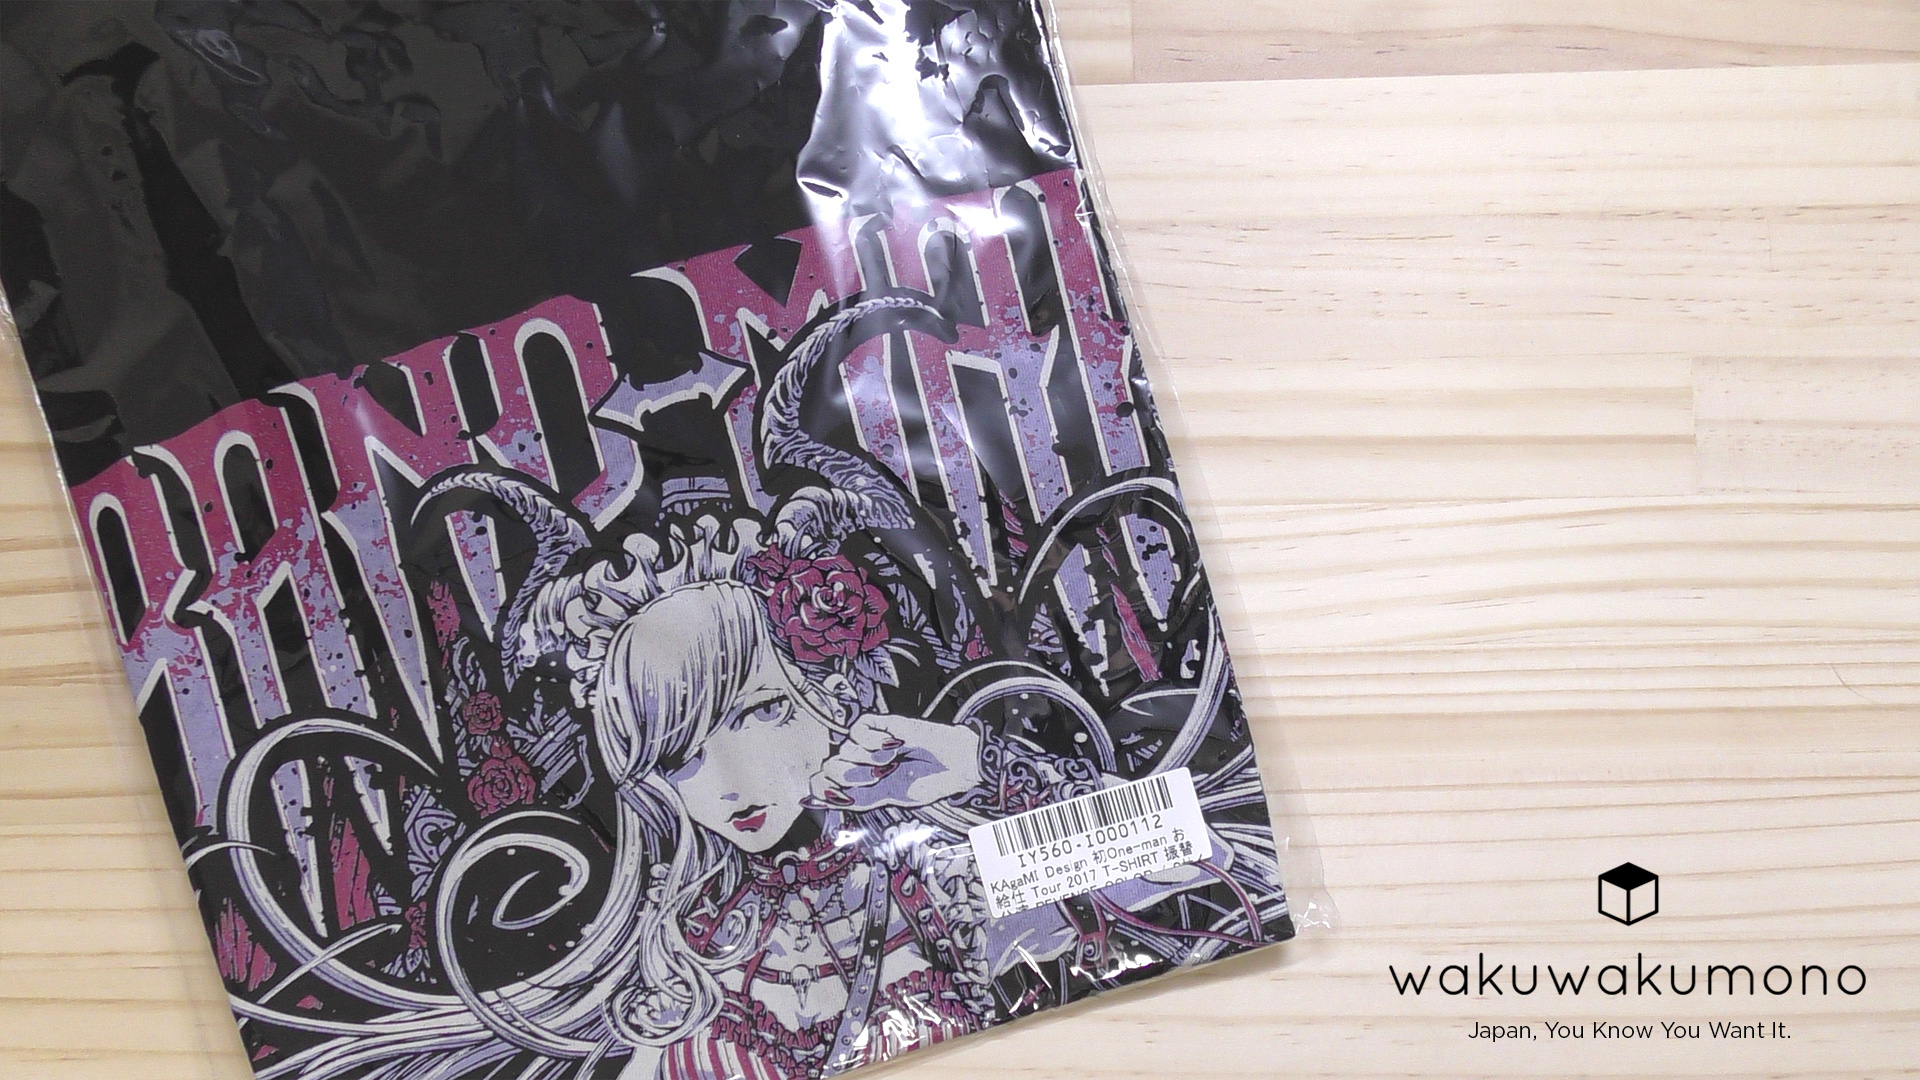 band-maid t-shirts (Japan Exclusive)